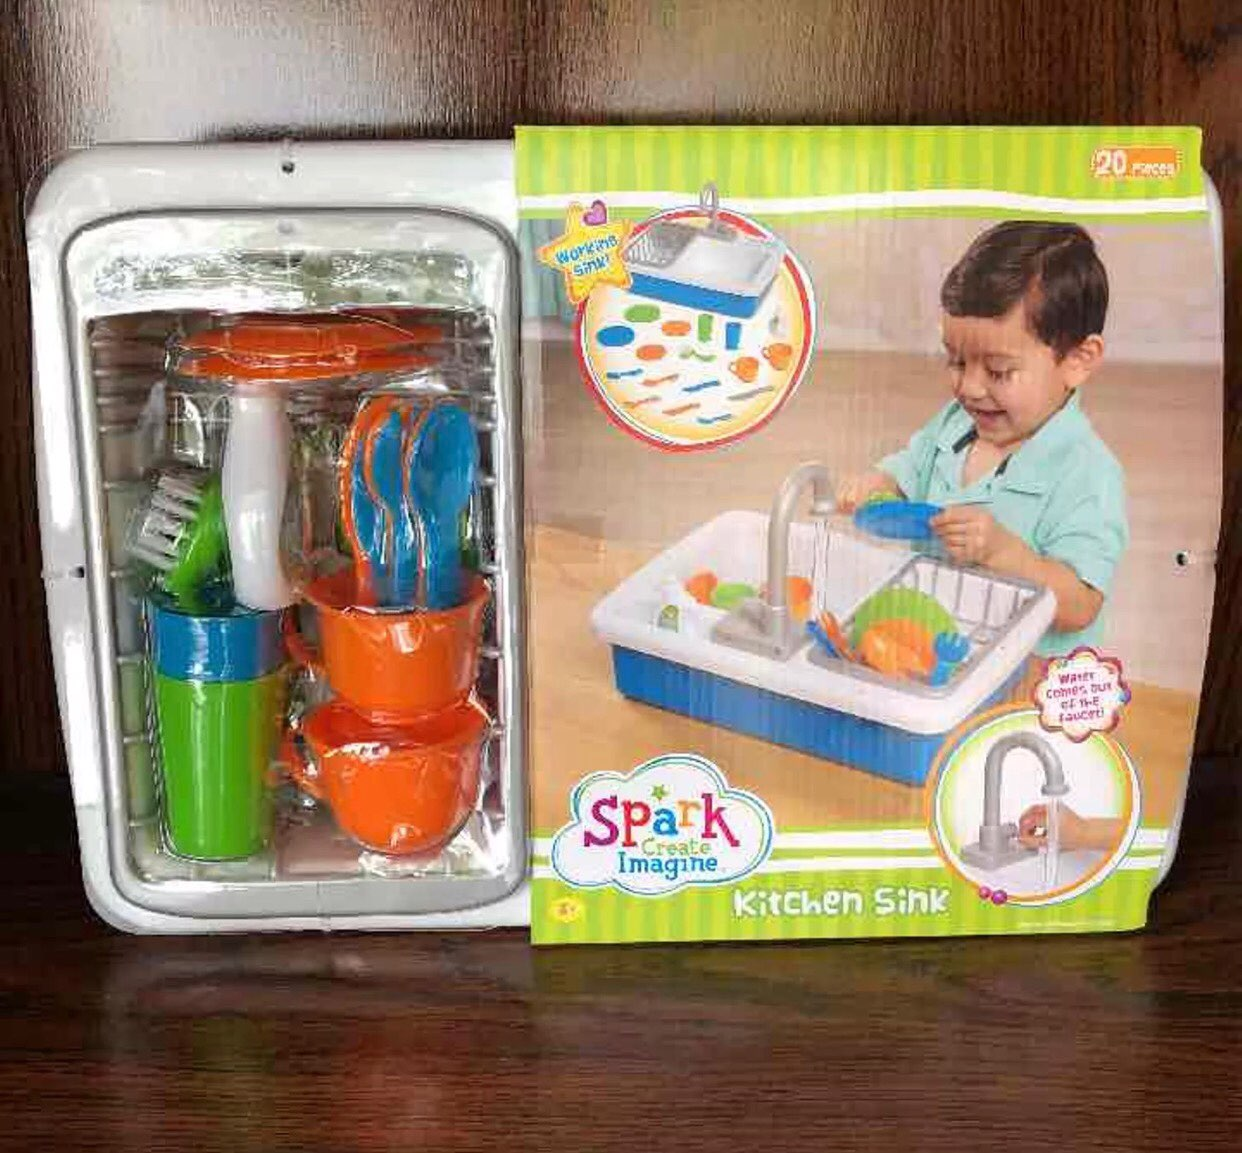 Spark Kitchen Sink Toy New In Box - Mercari: The Selling App